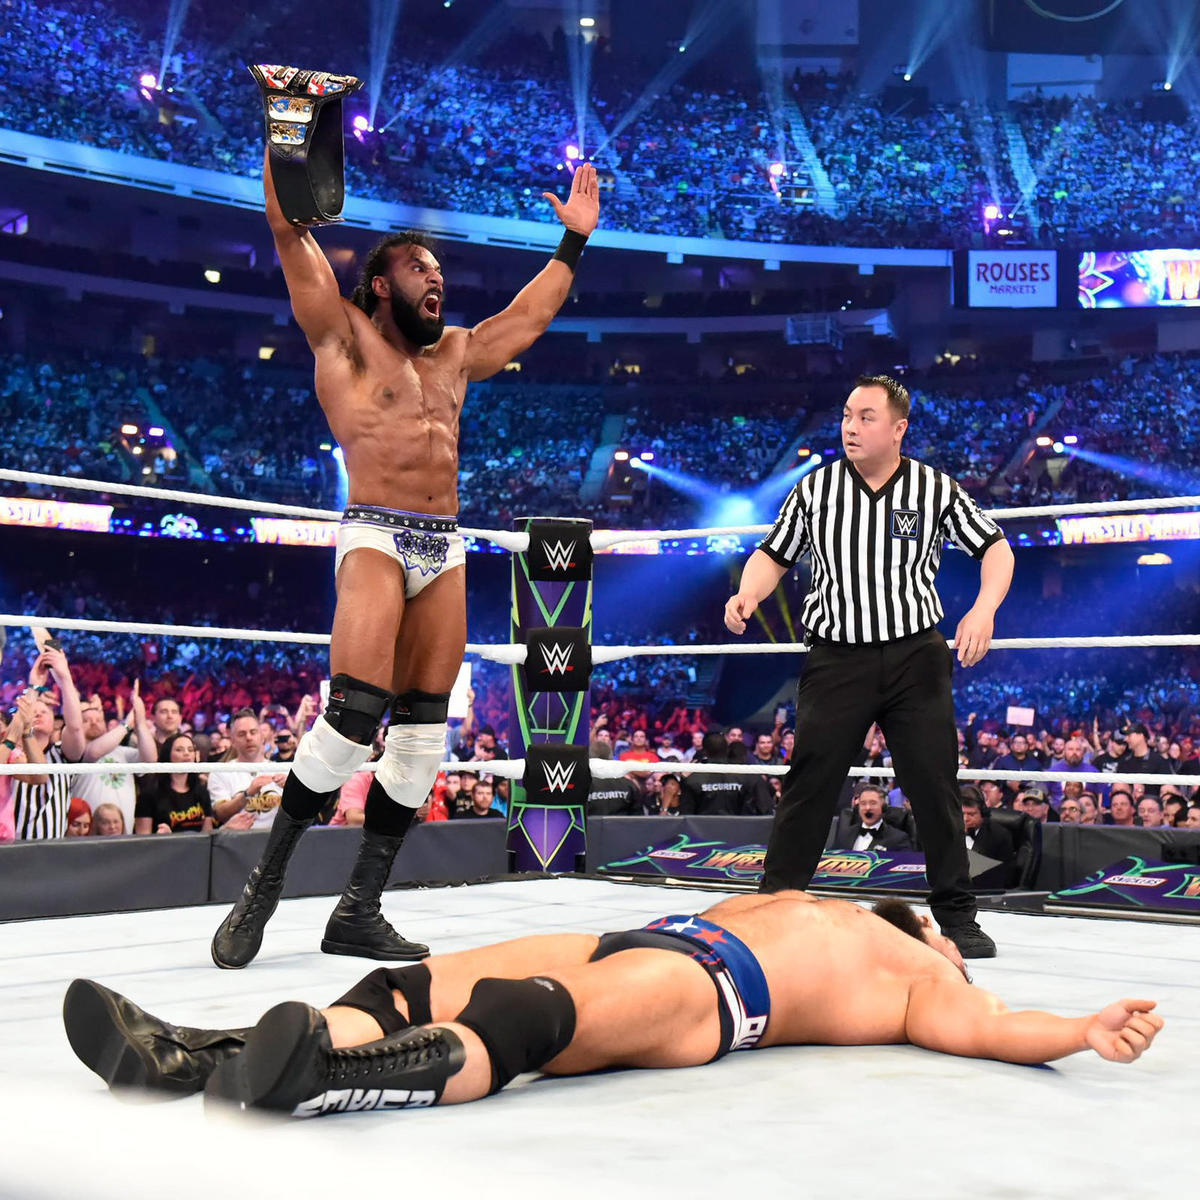 Mahal claims victory and wins the United States Championship.